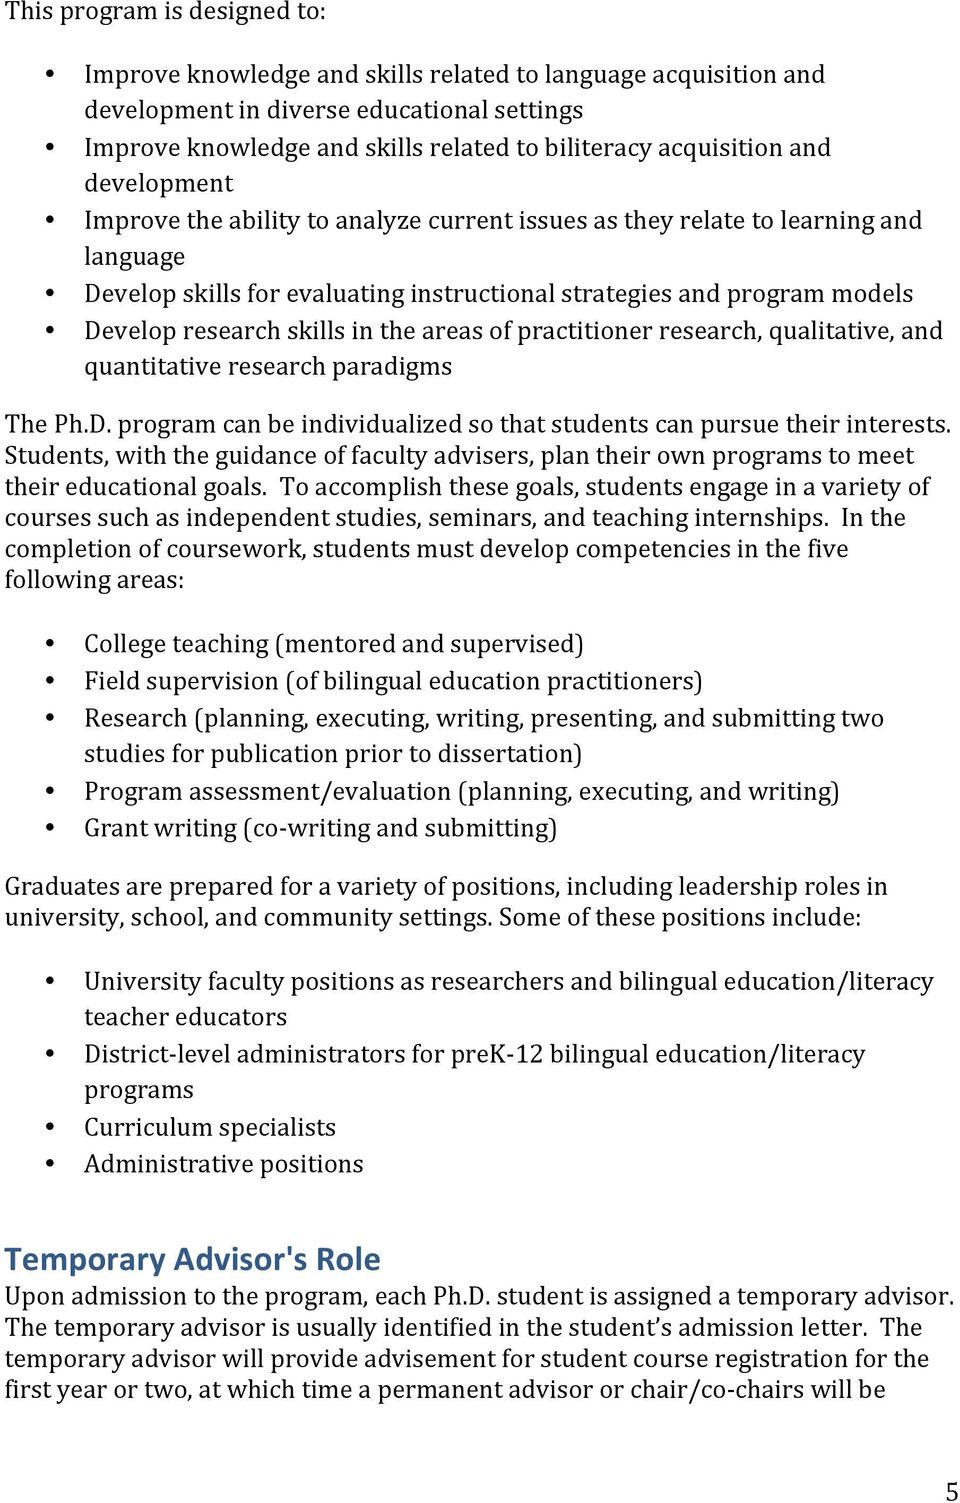 research skills in the areas of practitioner research, qualitative, and quantitative research paradigms The Ph.D. program can be individualized so that students can pursue their interests.